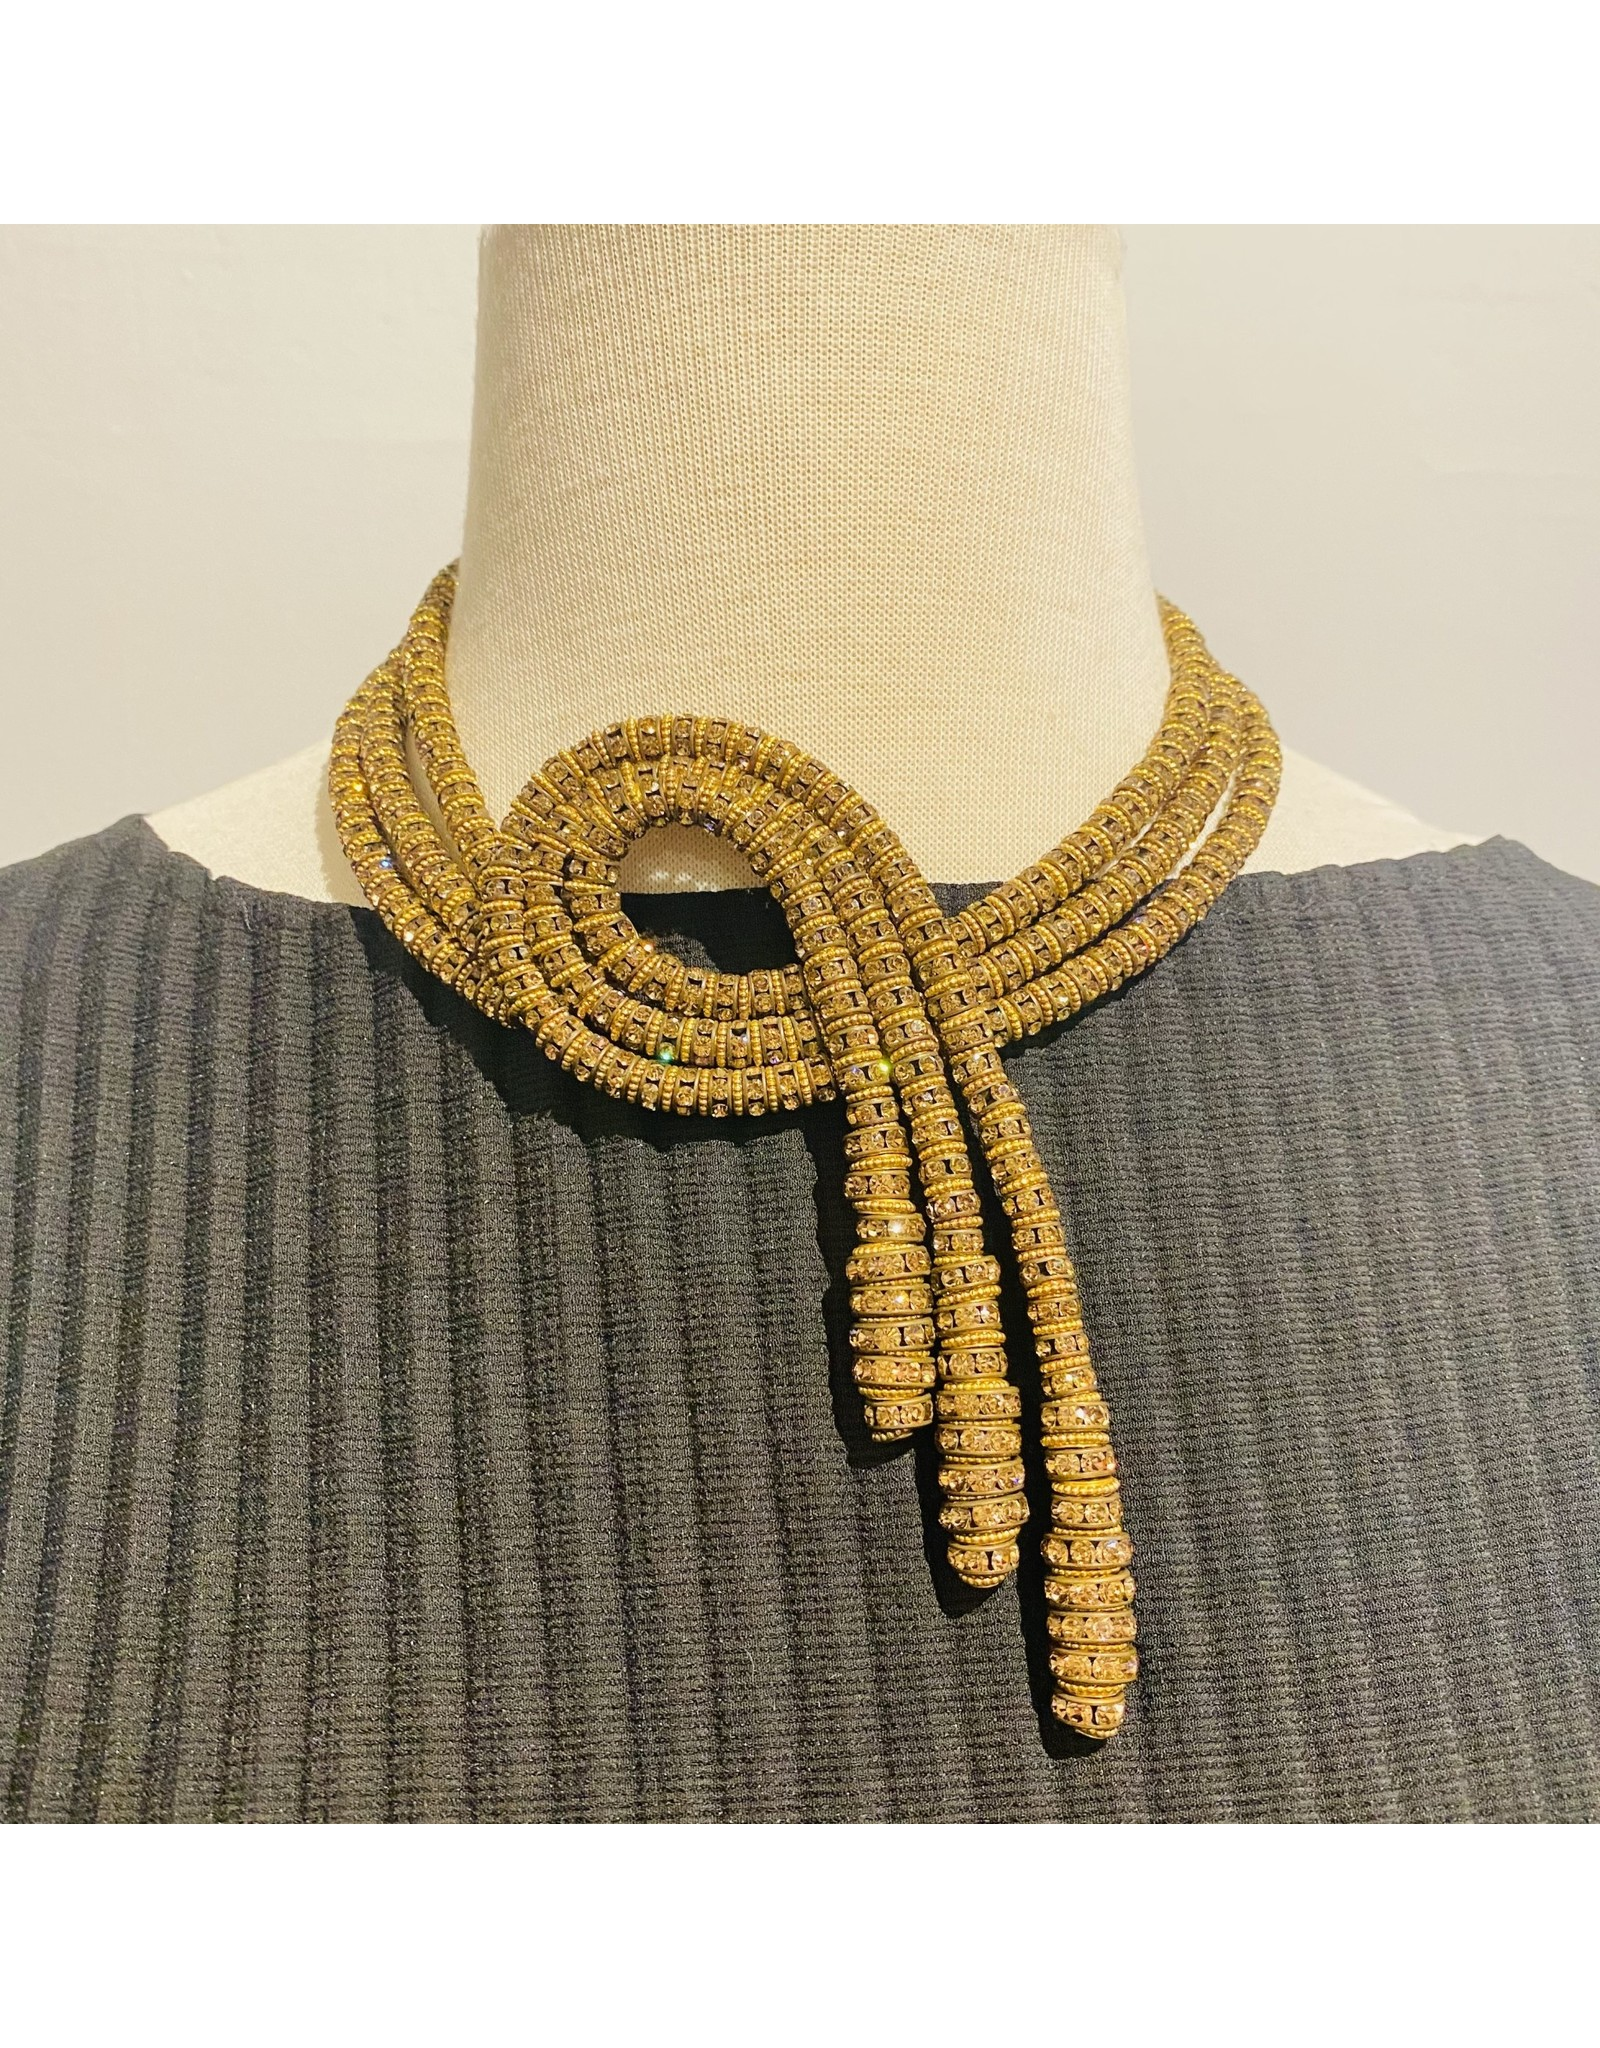 Francoise Montague Mayfair Necklace